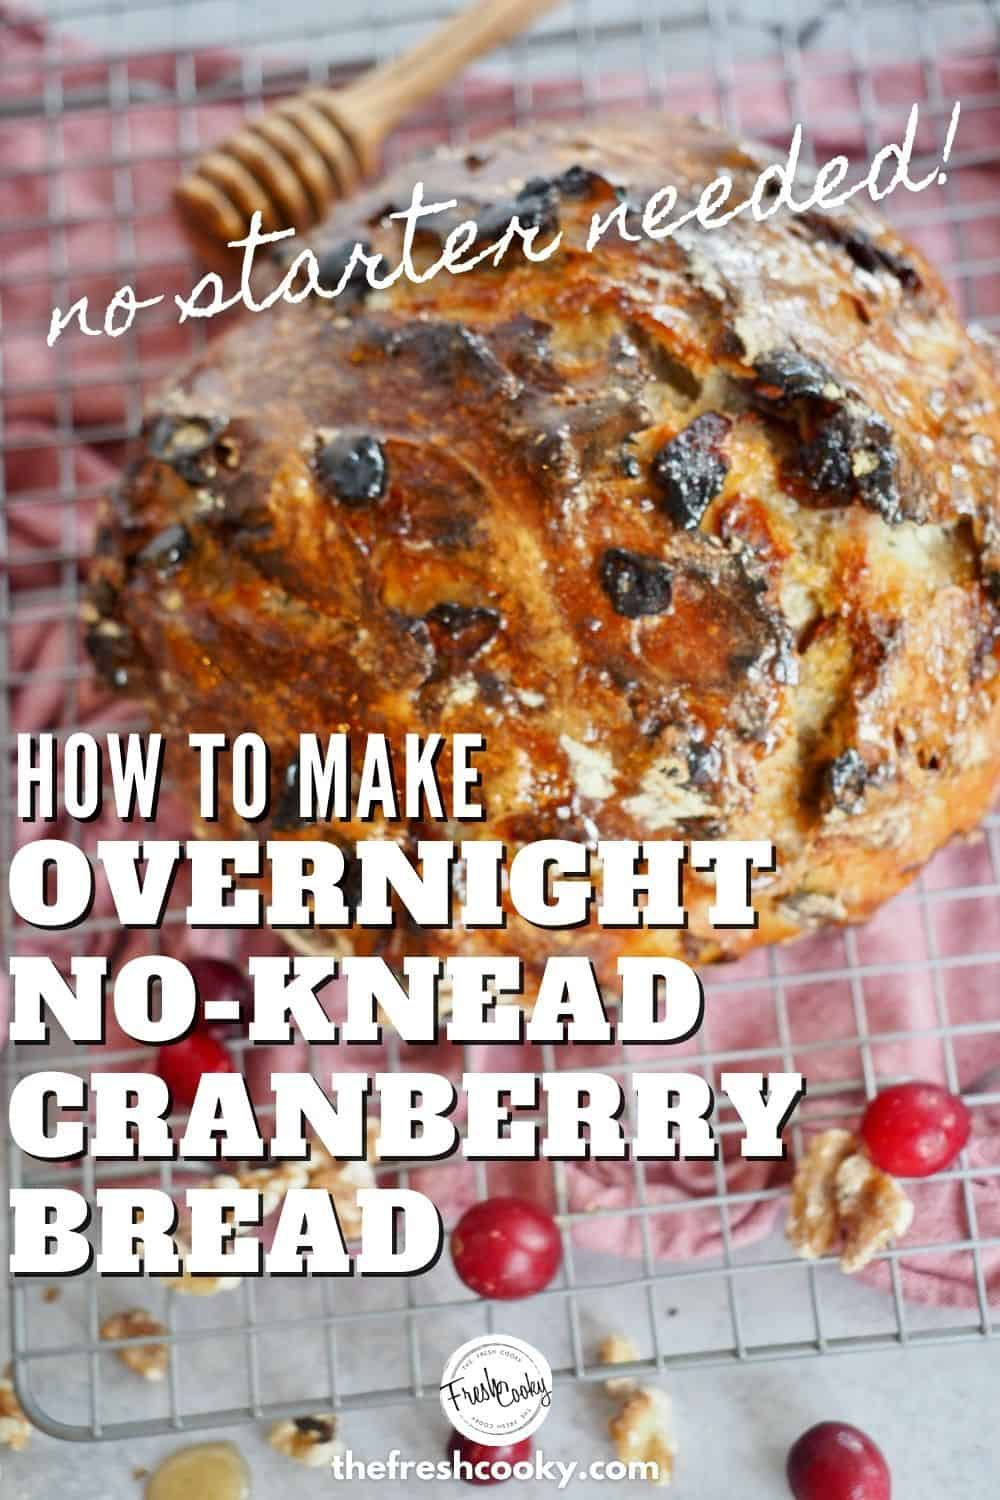 How to make your own homemade, no knead, cranberry walnut bread with step-by-step instructions. No starter needed for this simple rustic bread recipe, baked in a dutch oven using dried cranberries and nuts. #thefreshcooky #nokneadbread #holidaybaking via @thefreshcooky